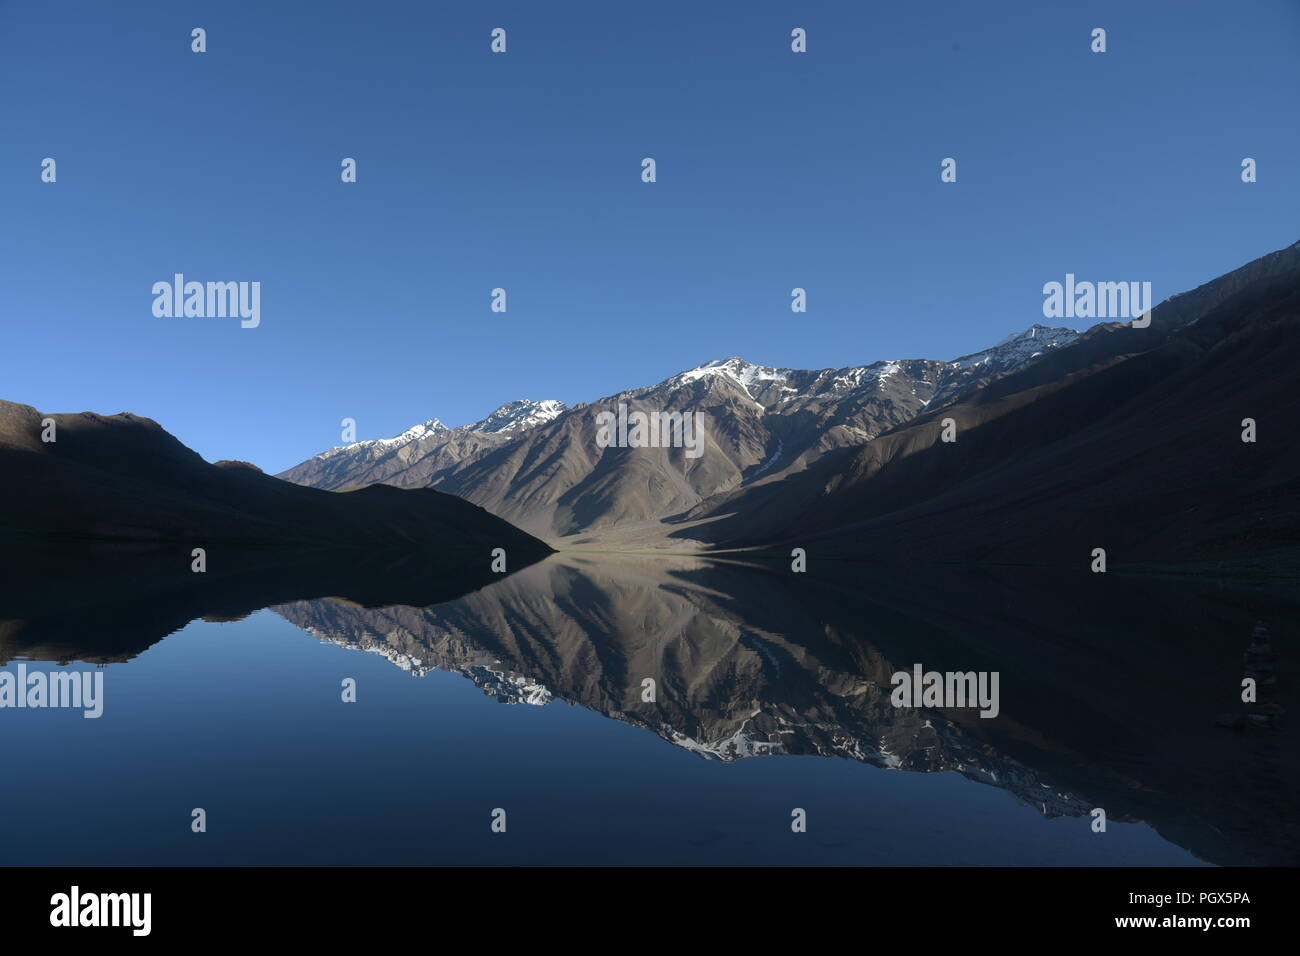 landscapes of Spiti , himachal pradesh ,India. - Stock Image